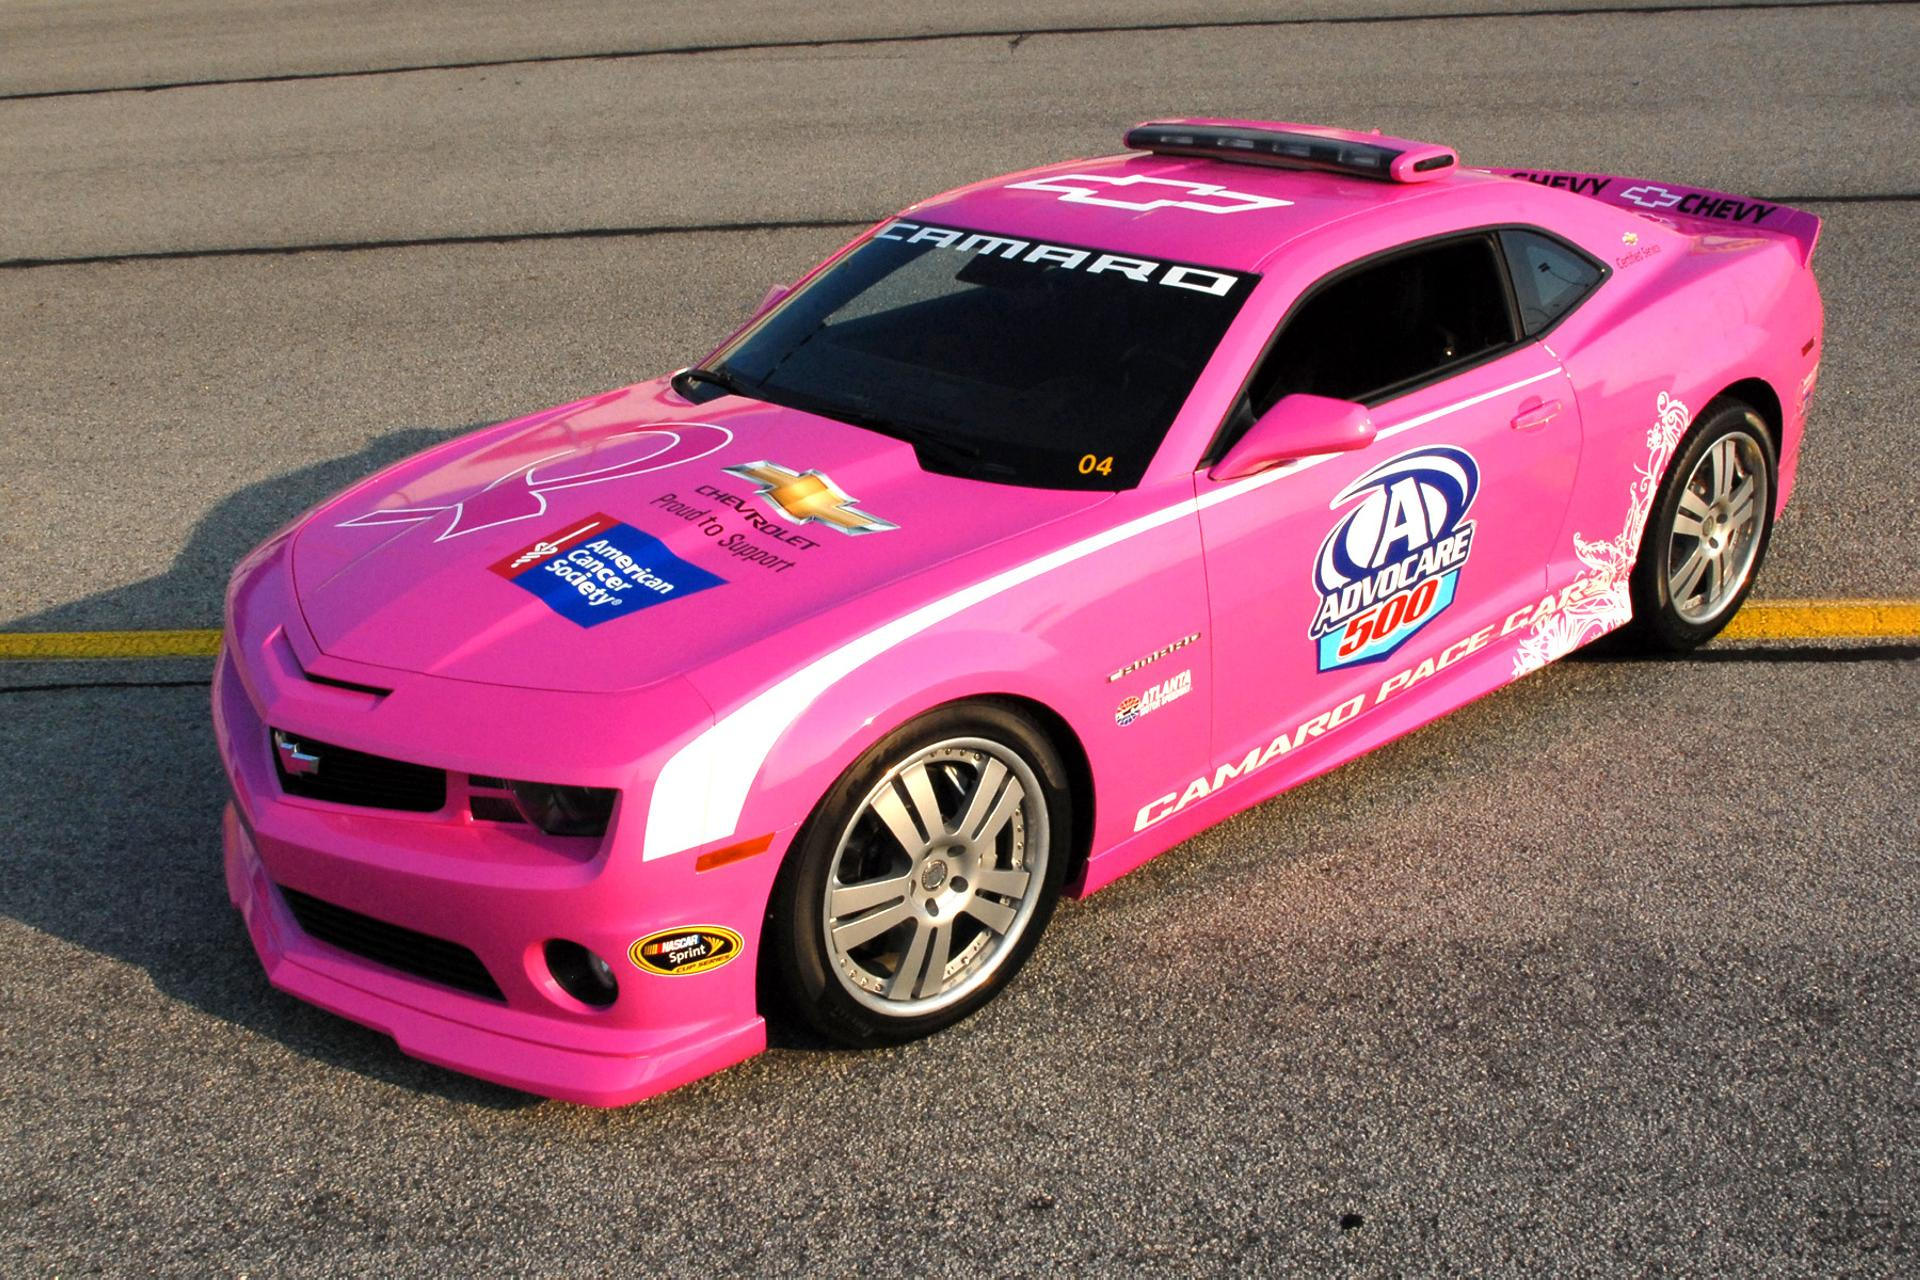 2012 chevrolet pink camaro pace car. Black Bedroom Furniture Sets. Home Design Ideas